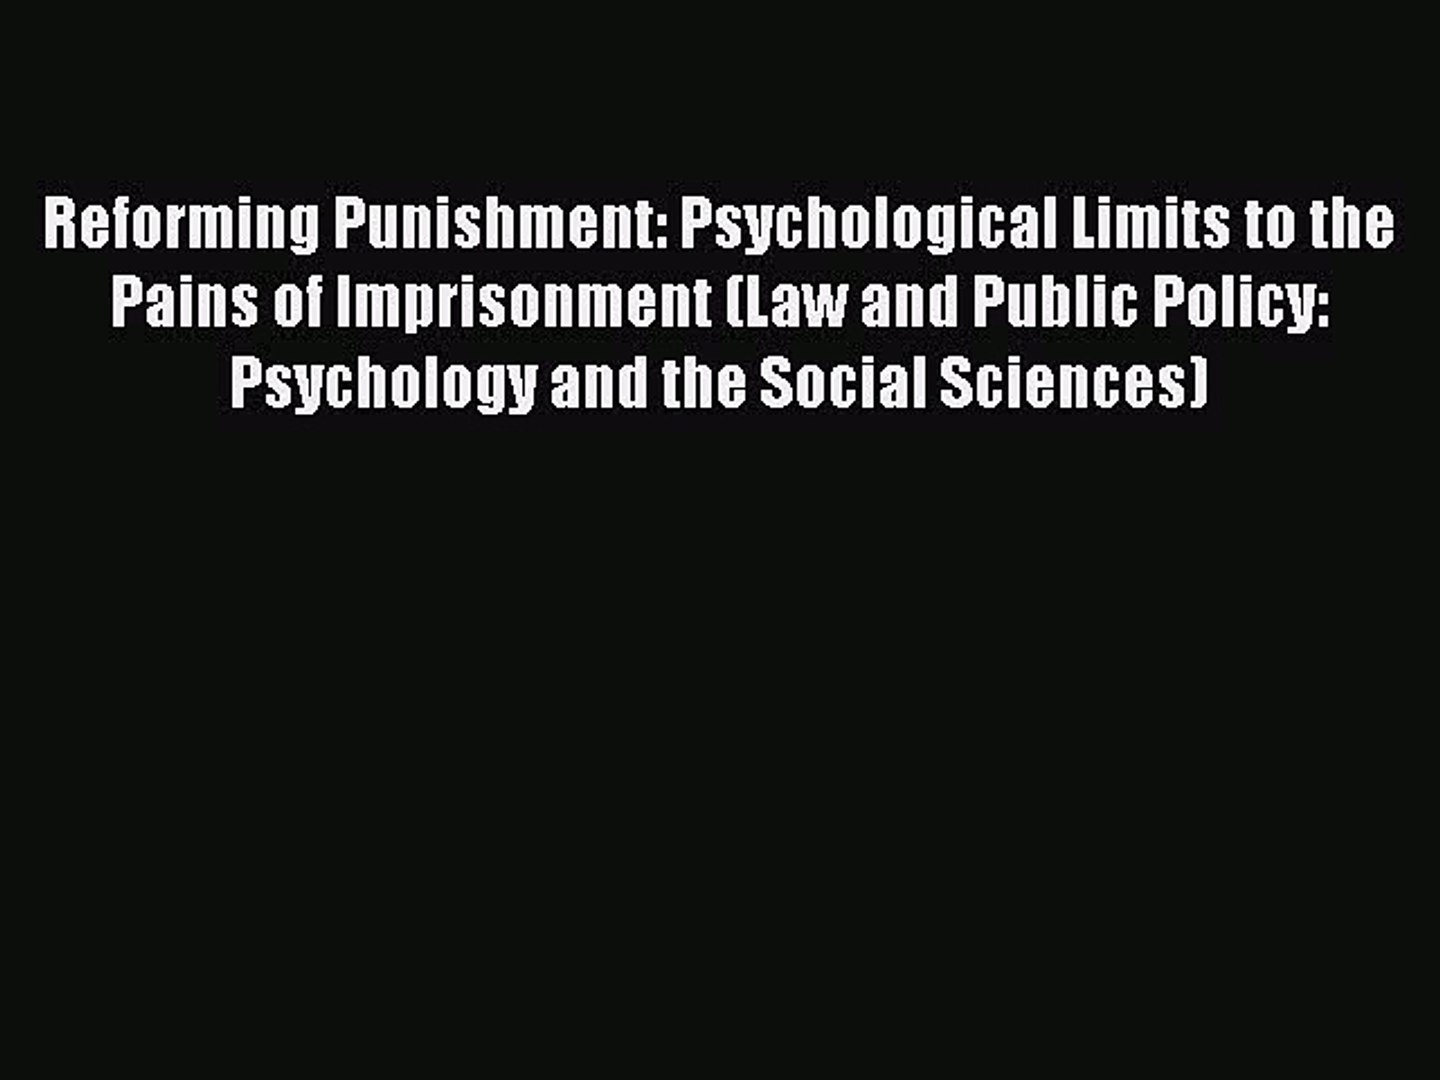 Psychological Limits to the Pains of Imprisonment Reforming Punishment